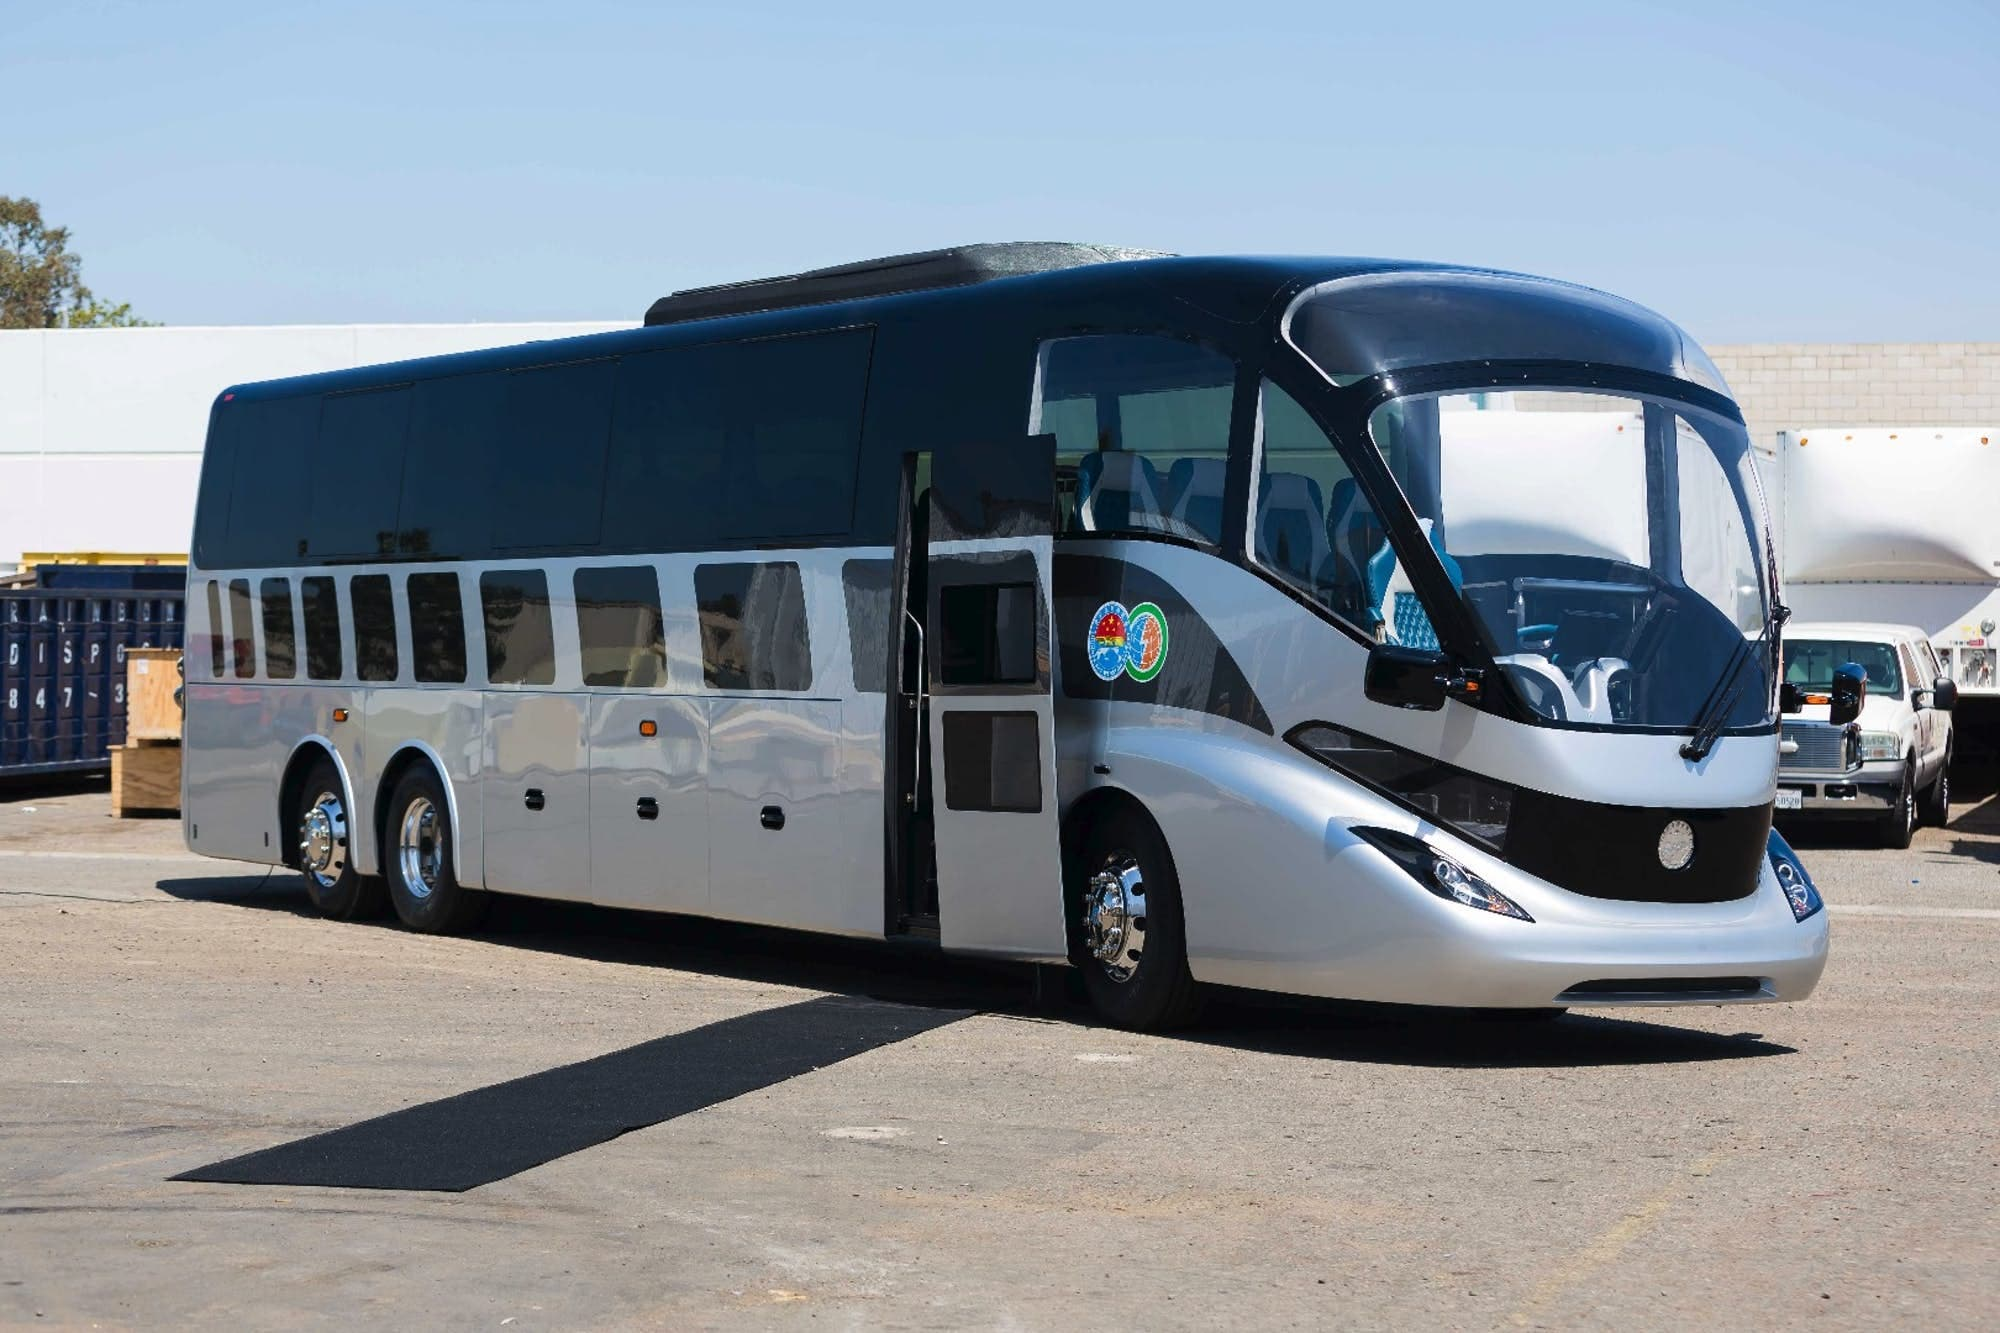 The Gaffoglio Electric Bus Shows That Buses Can Look Good